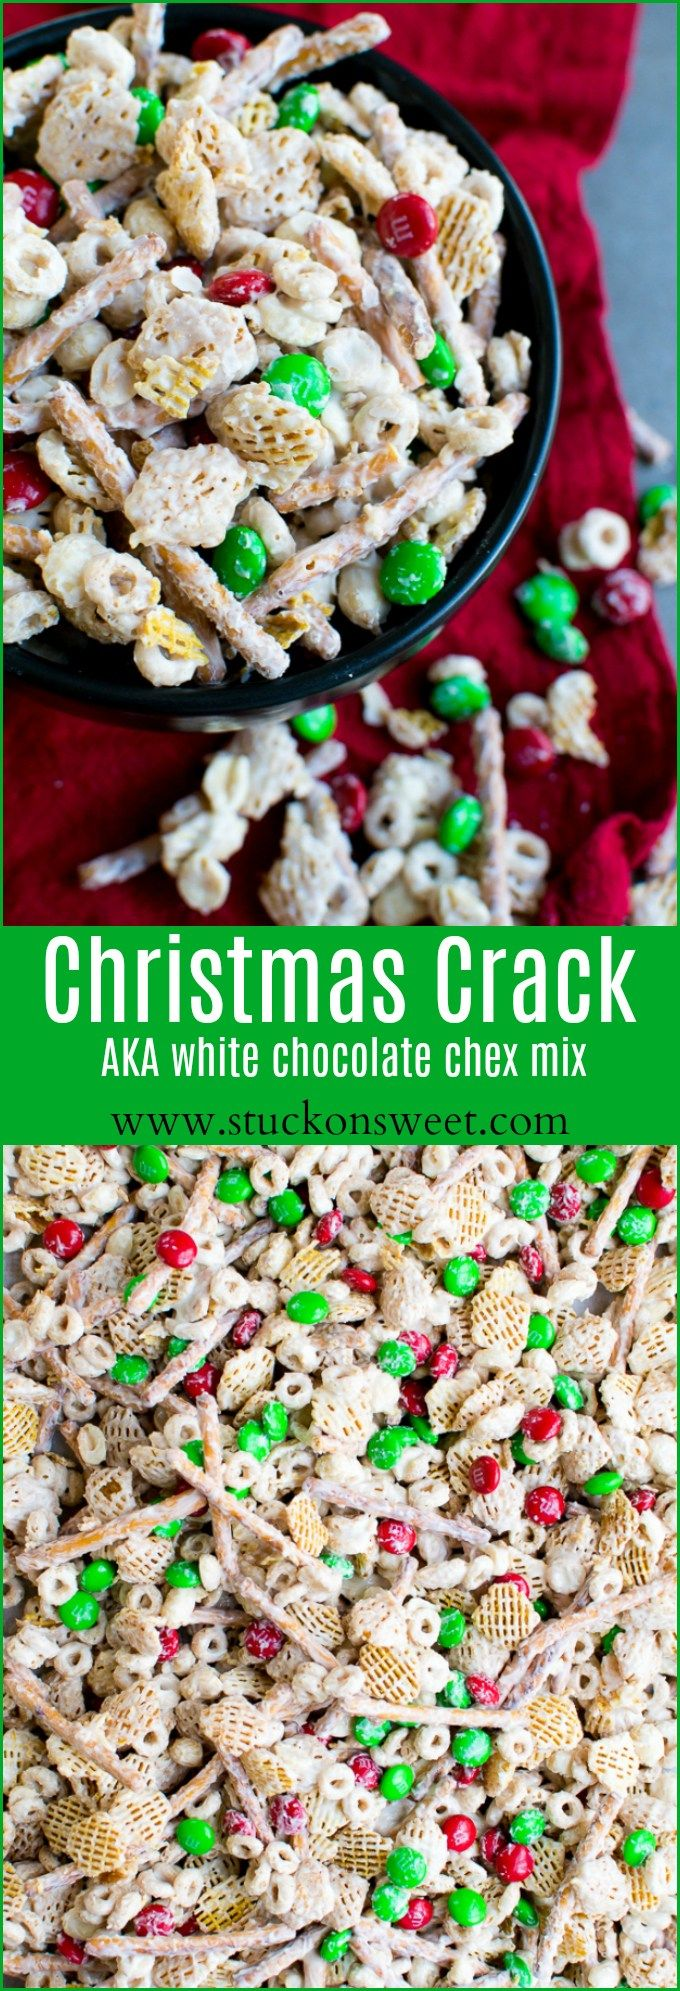 White Chocolate Chex Mix (auch bekannt als Christmas Crack)   – food & booze